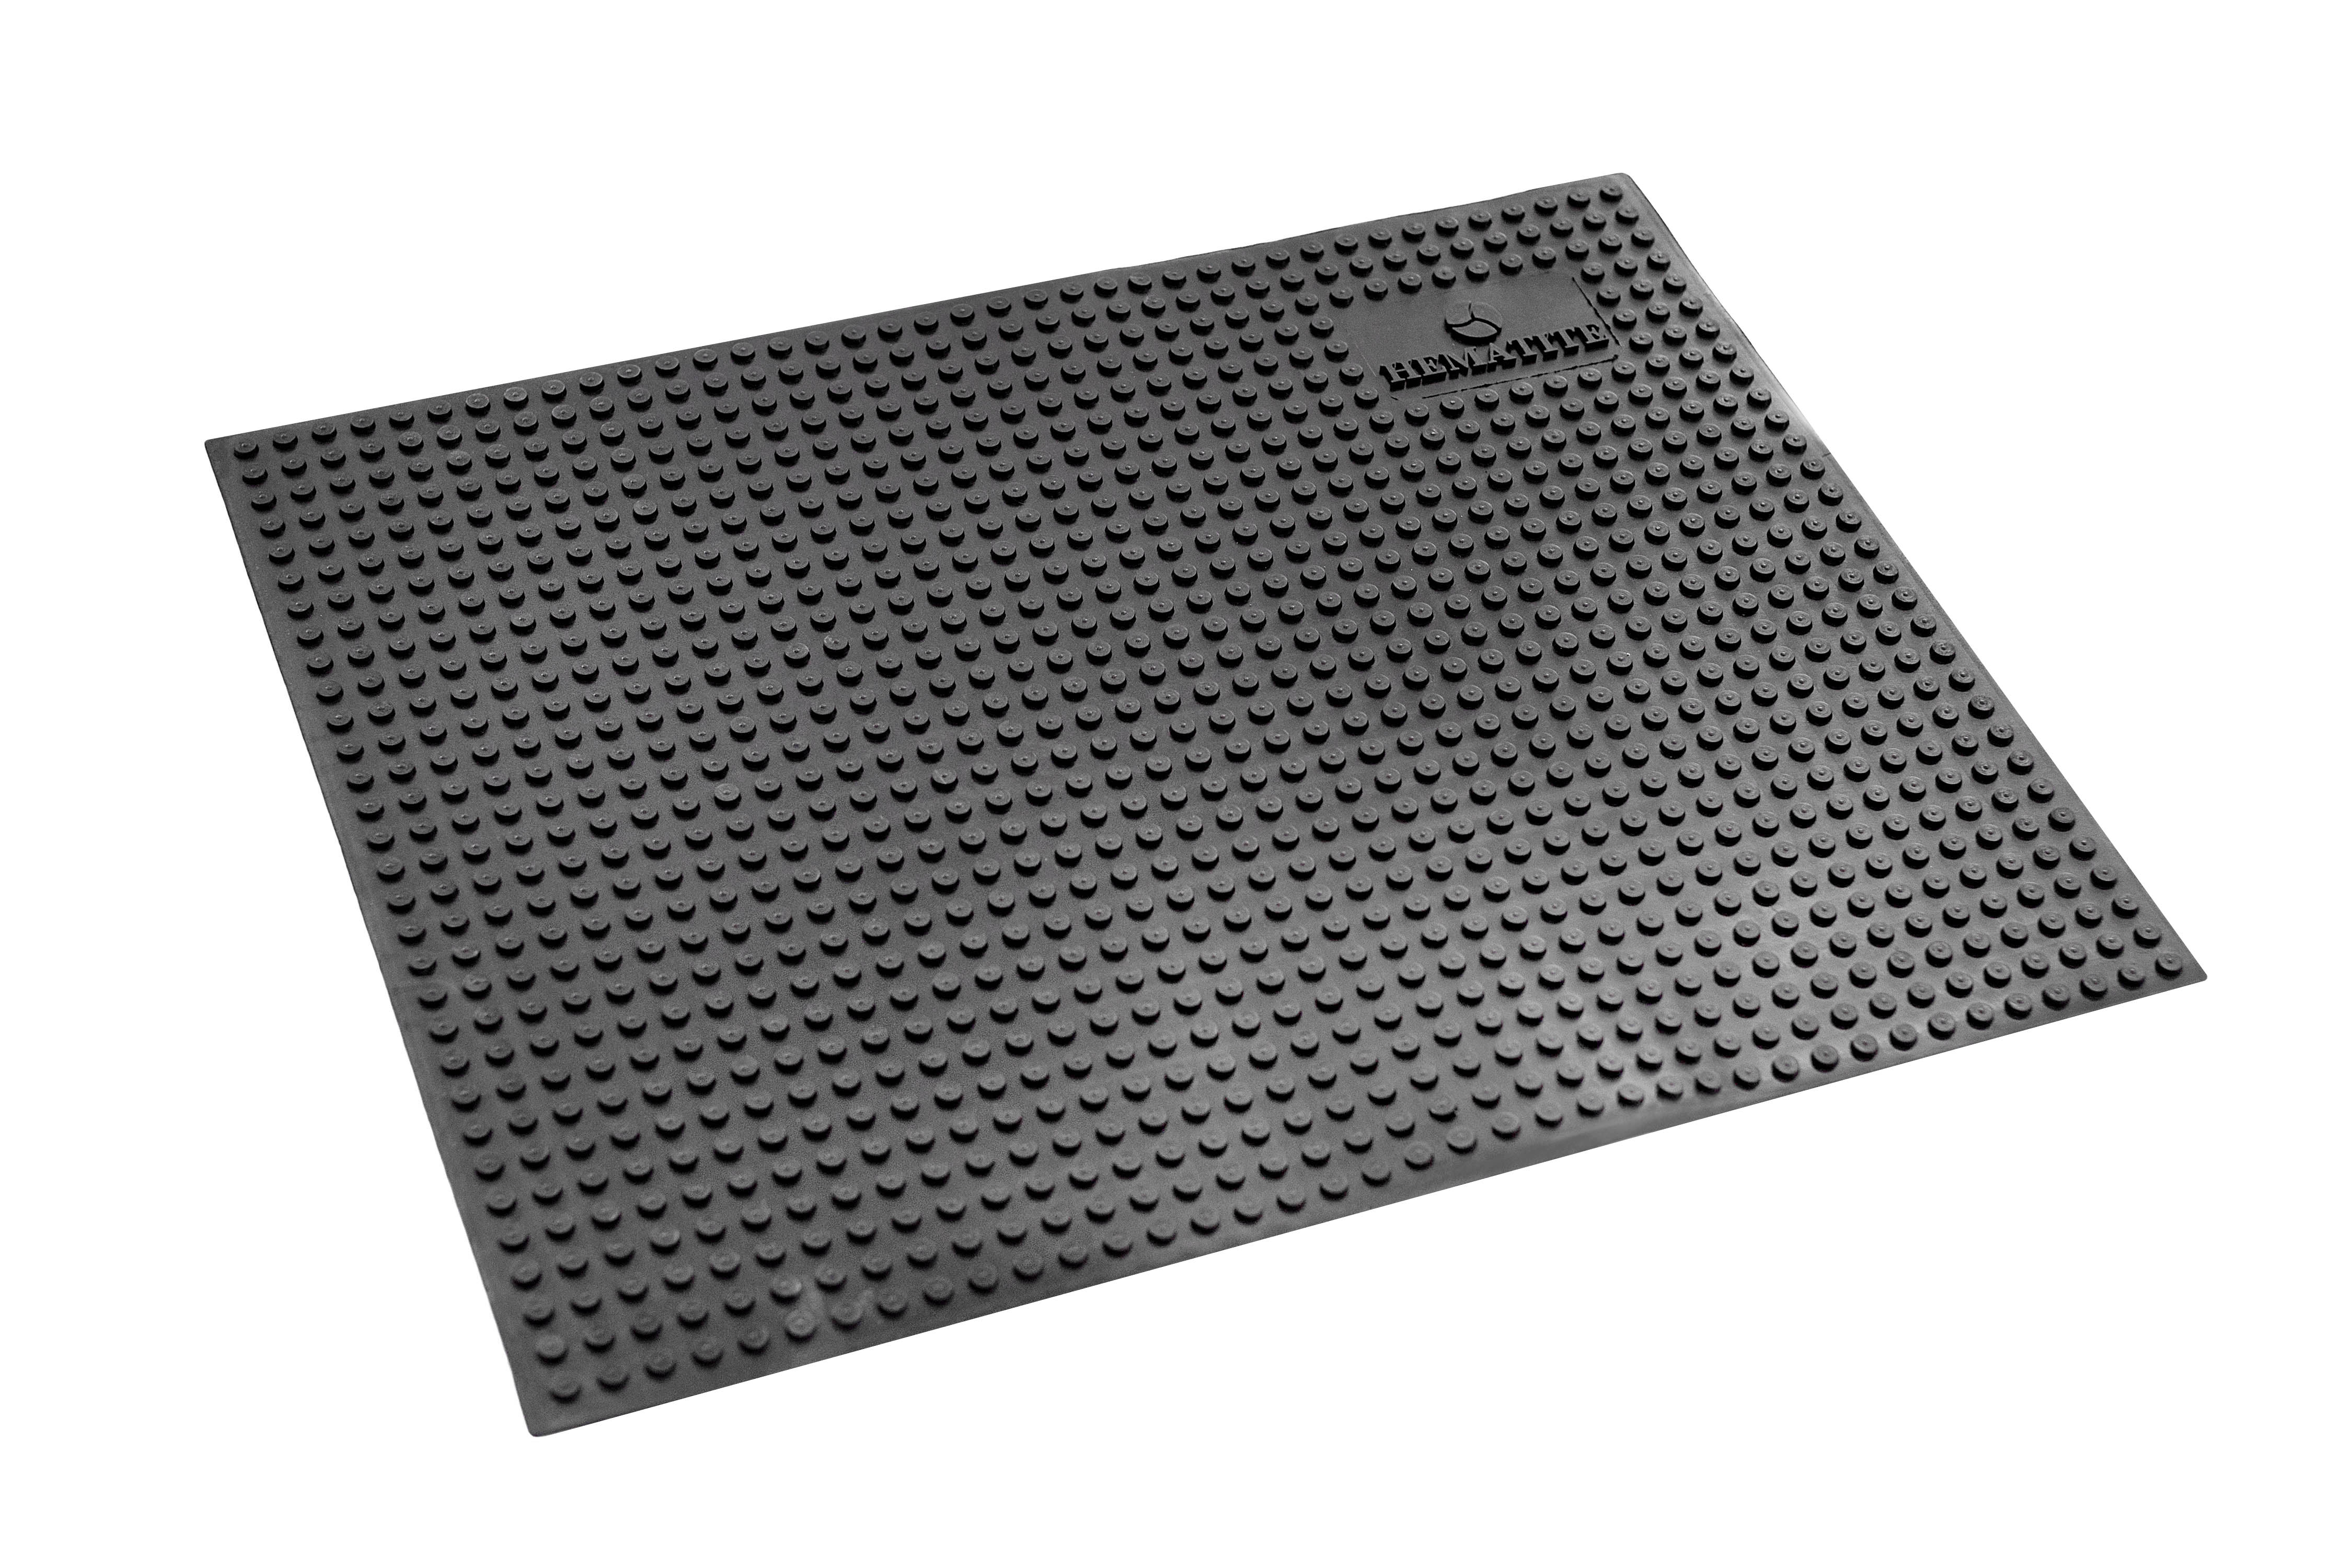 Hematite-Branded-Mat-Project